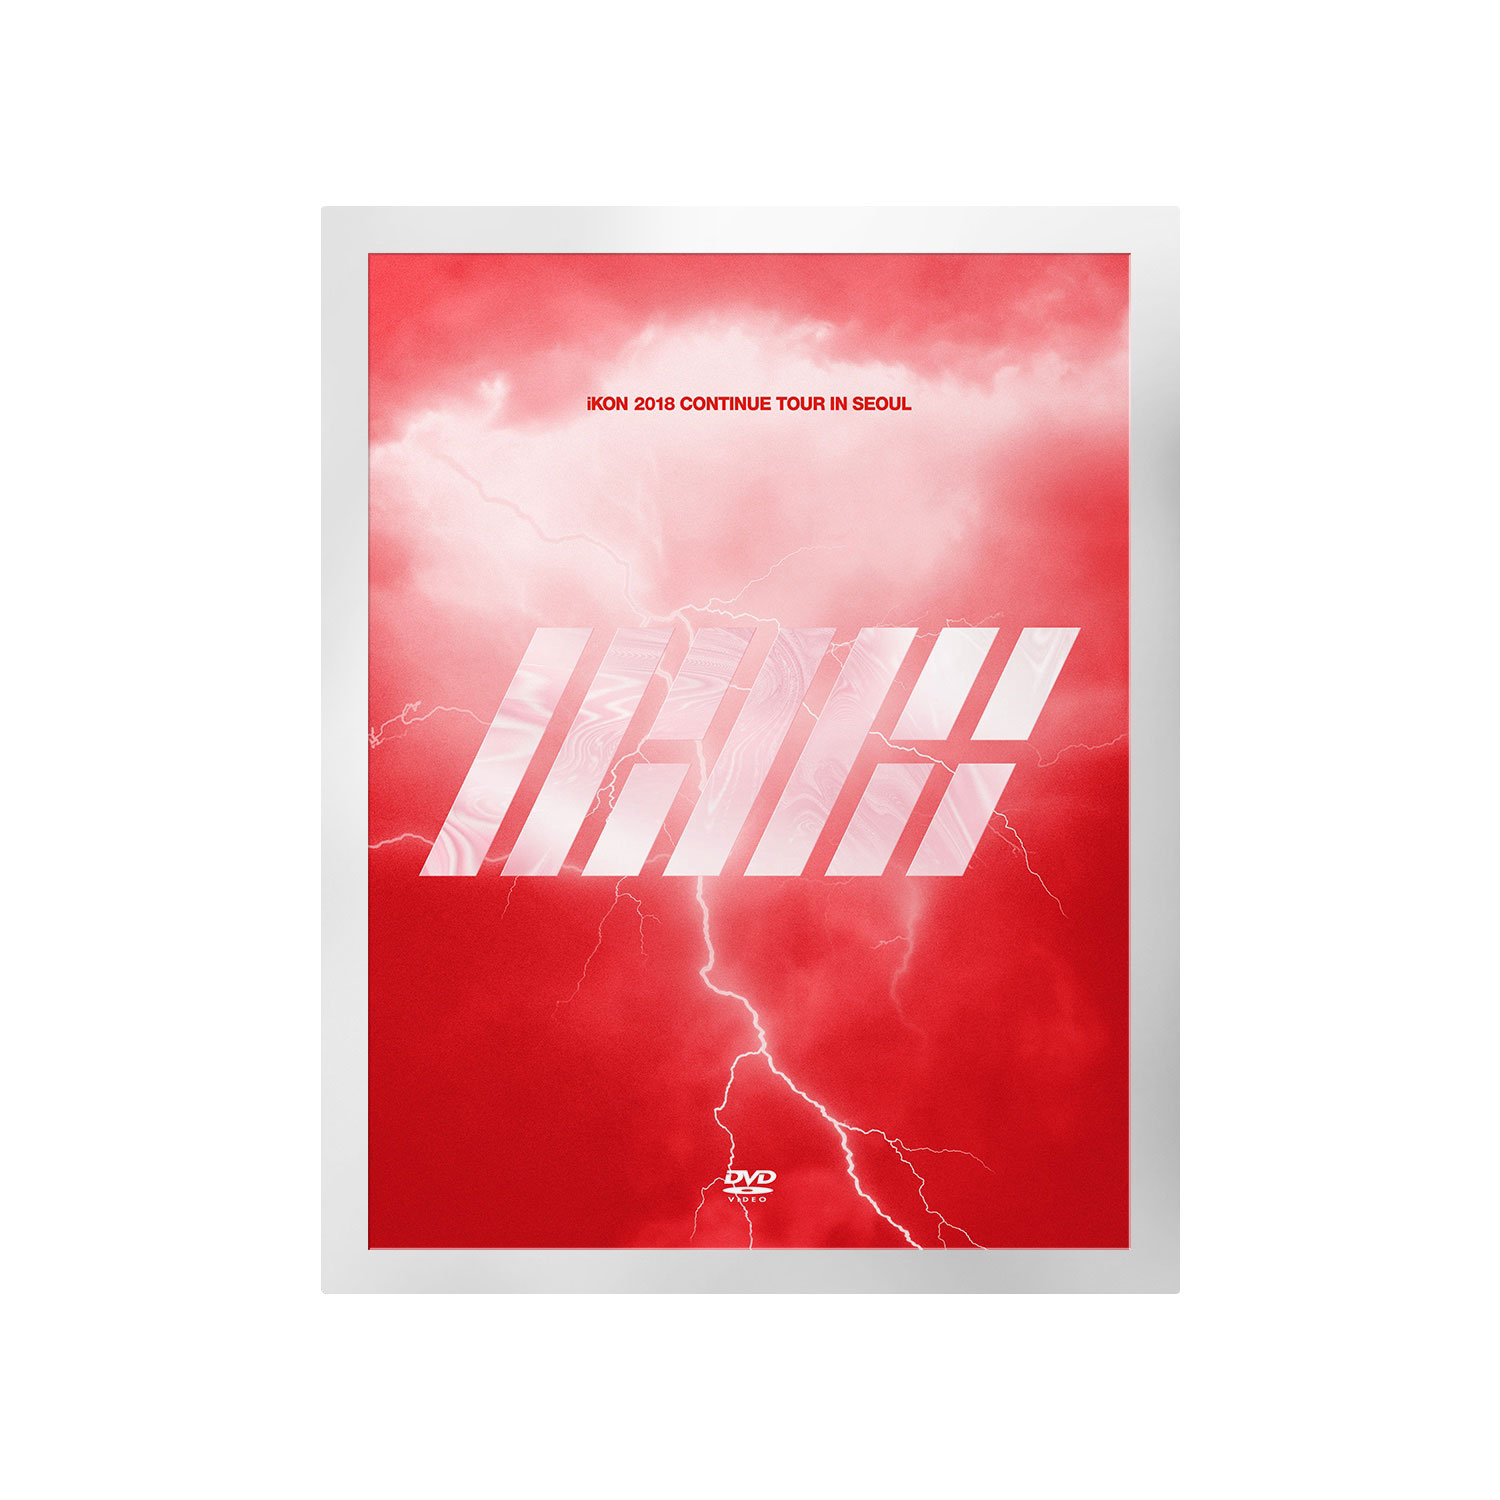 iKON 2018 [CONTINUE] TOUR IN SEOUL DVD